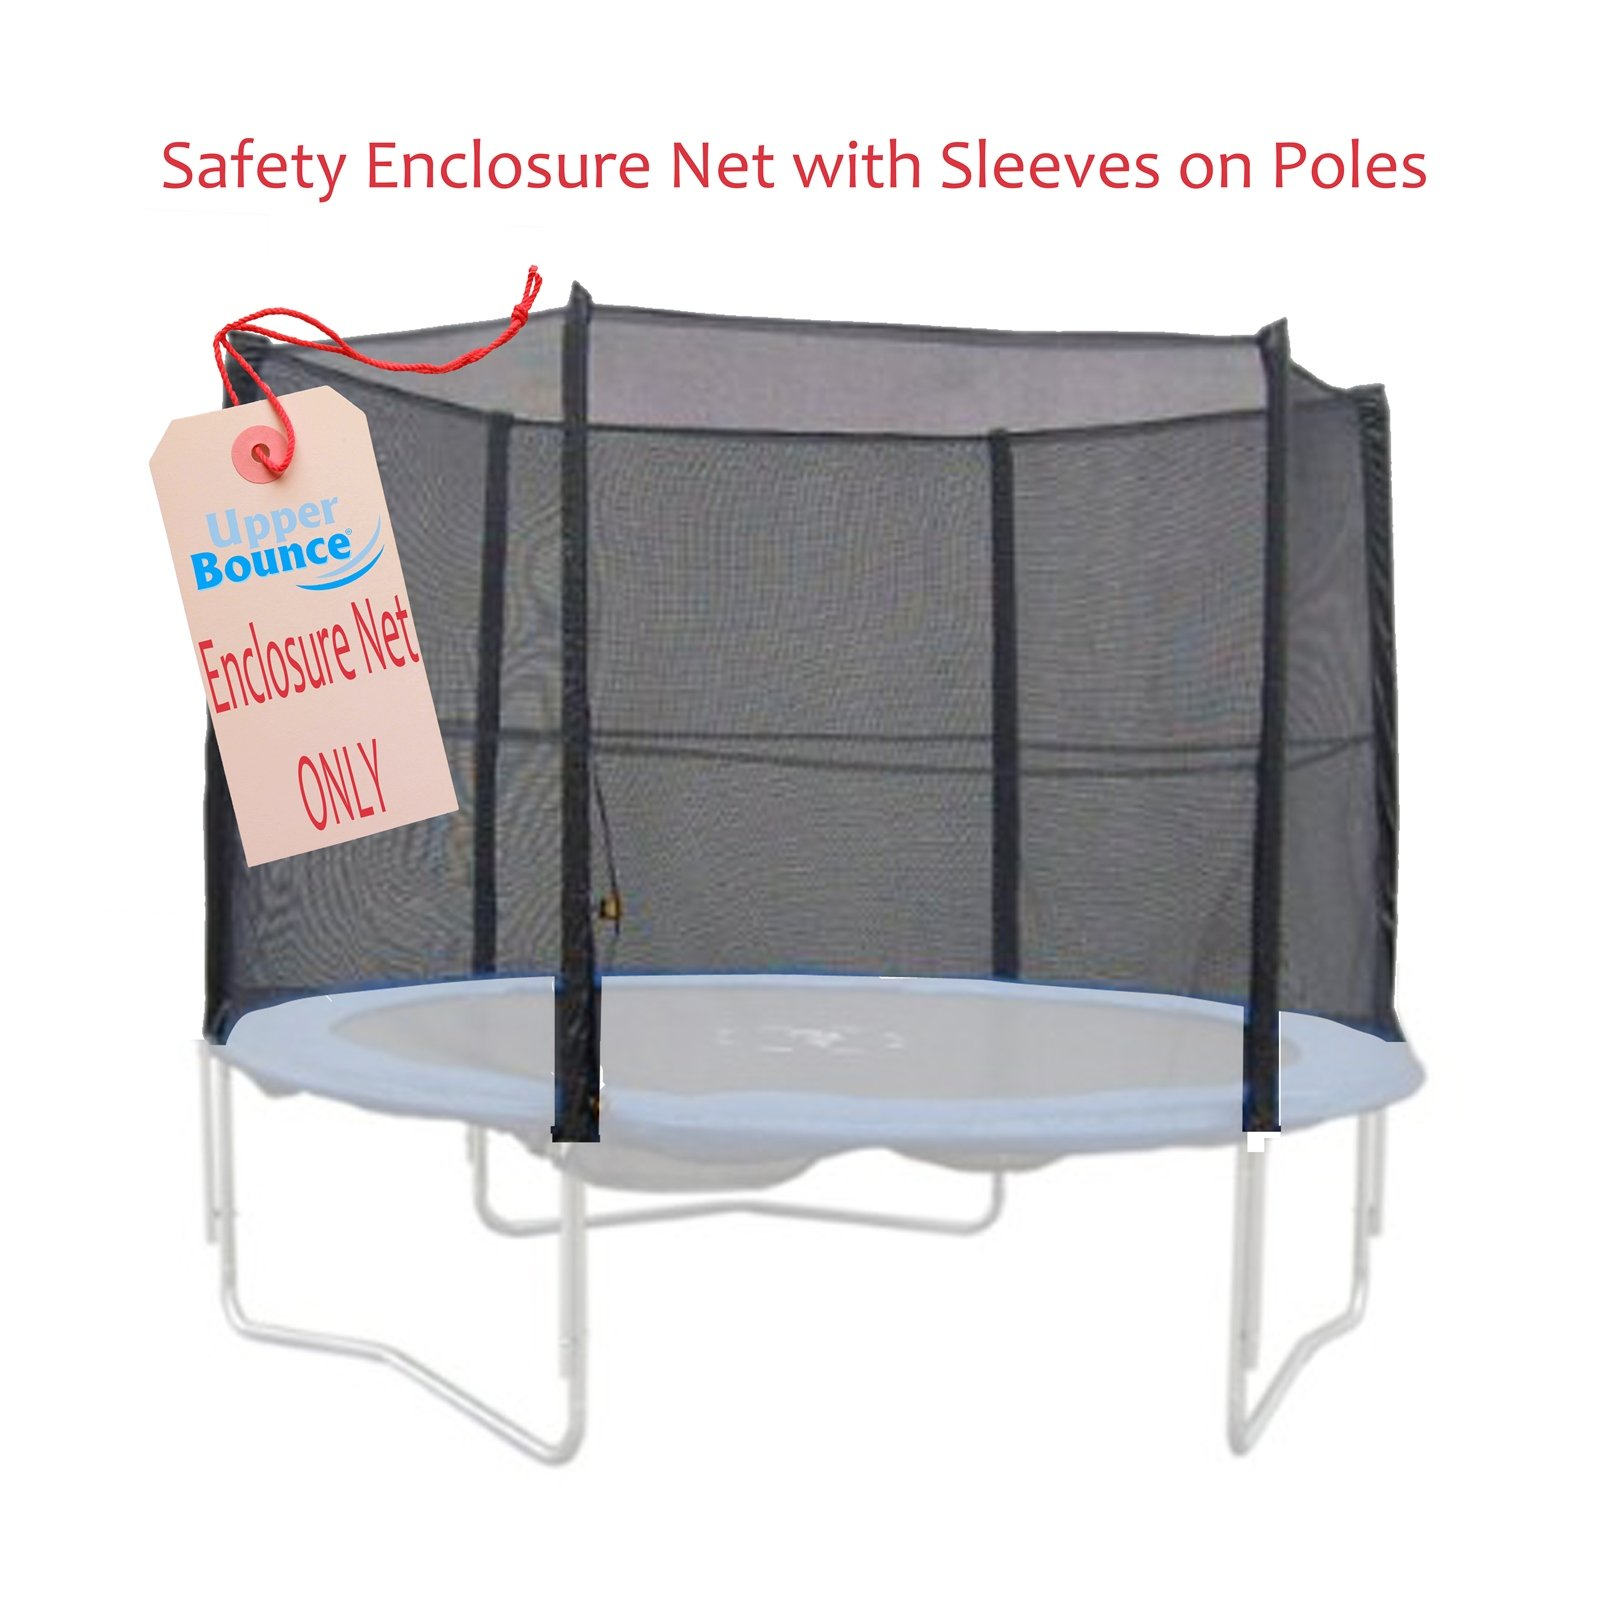 Upper Bounce Trampoline Replacement Net, Fits for 12 FT. Round Frames, Using 4 Straight Poles, Installs Outside of Frame -NET ONLY by Upper Bounce